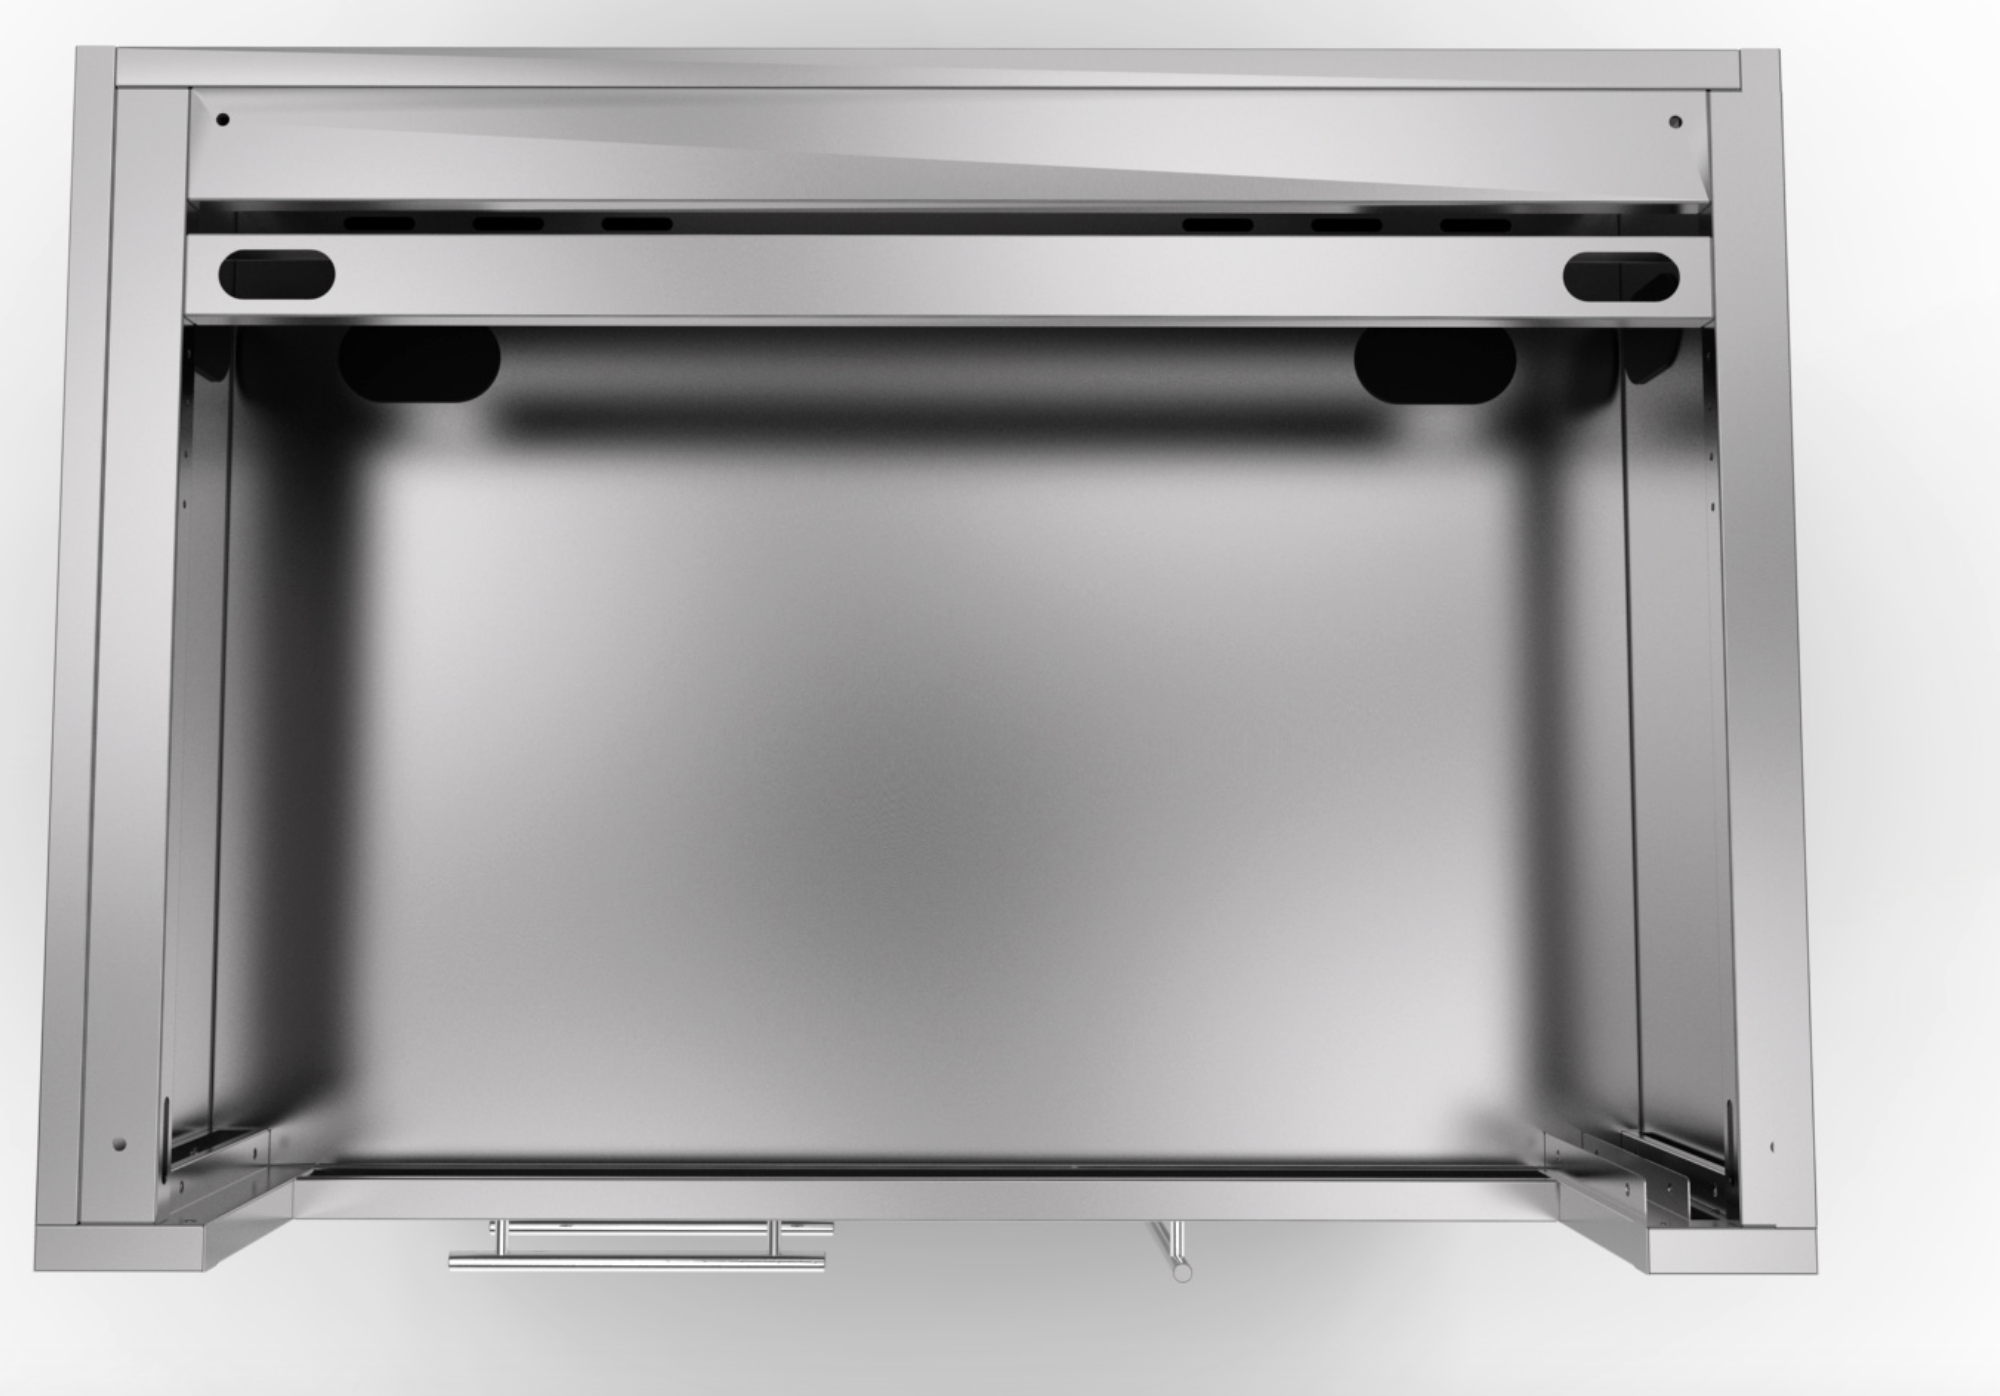 Sunstone 40 inch gas grill base cabinet sac40glpcd for 40 inch kitchen cabinets